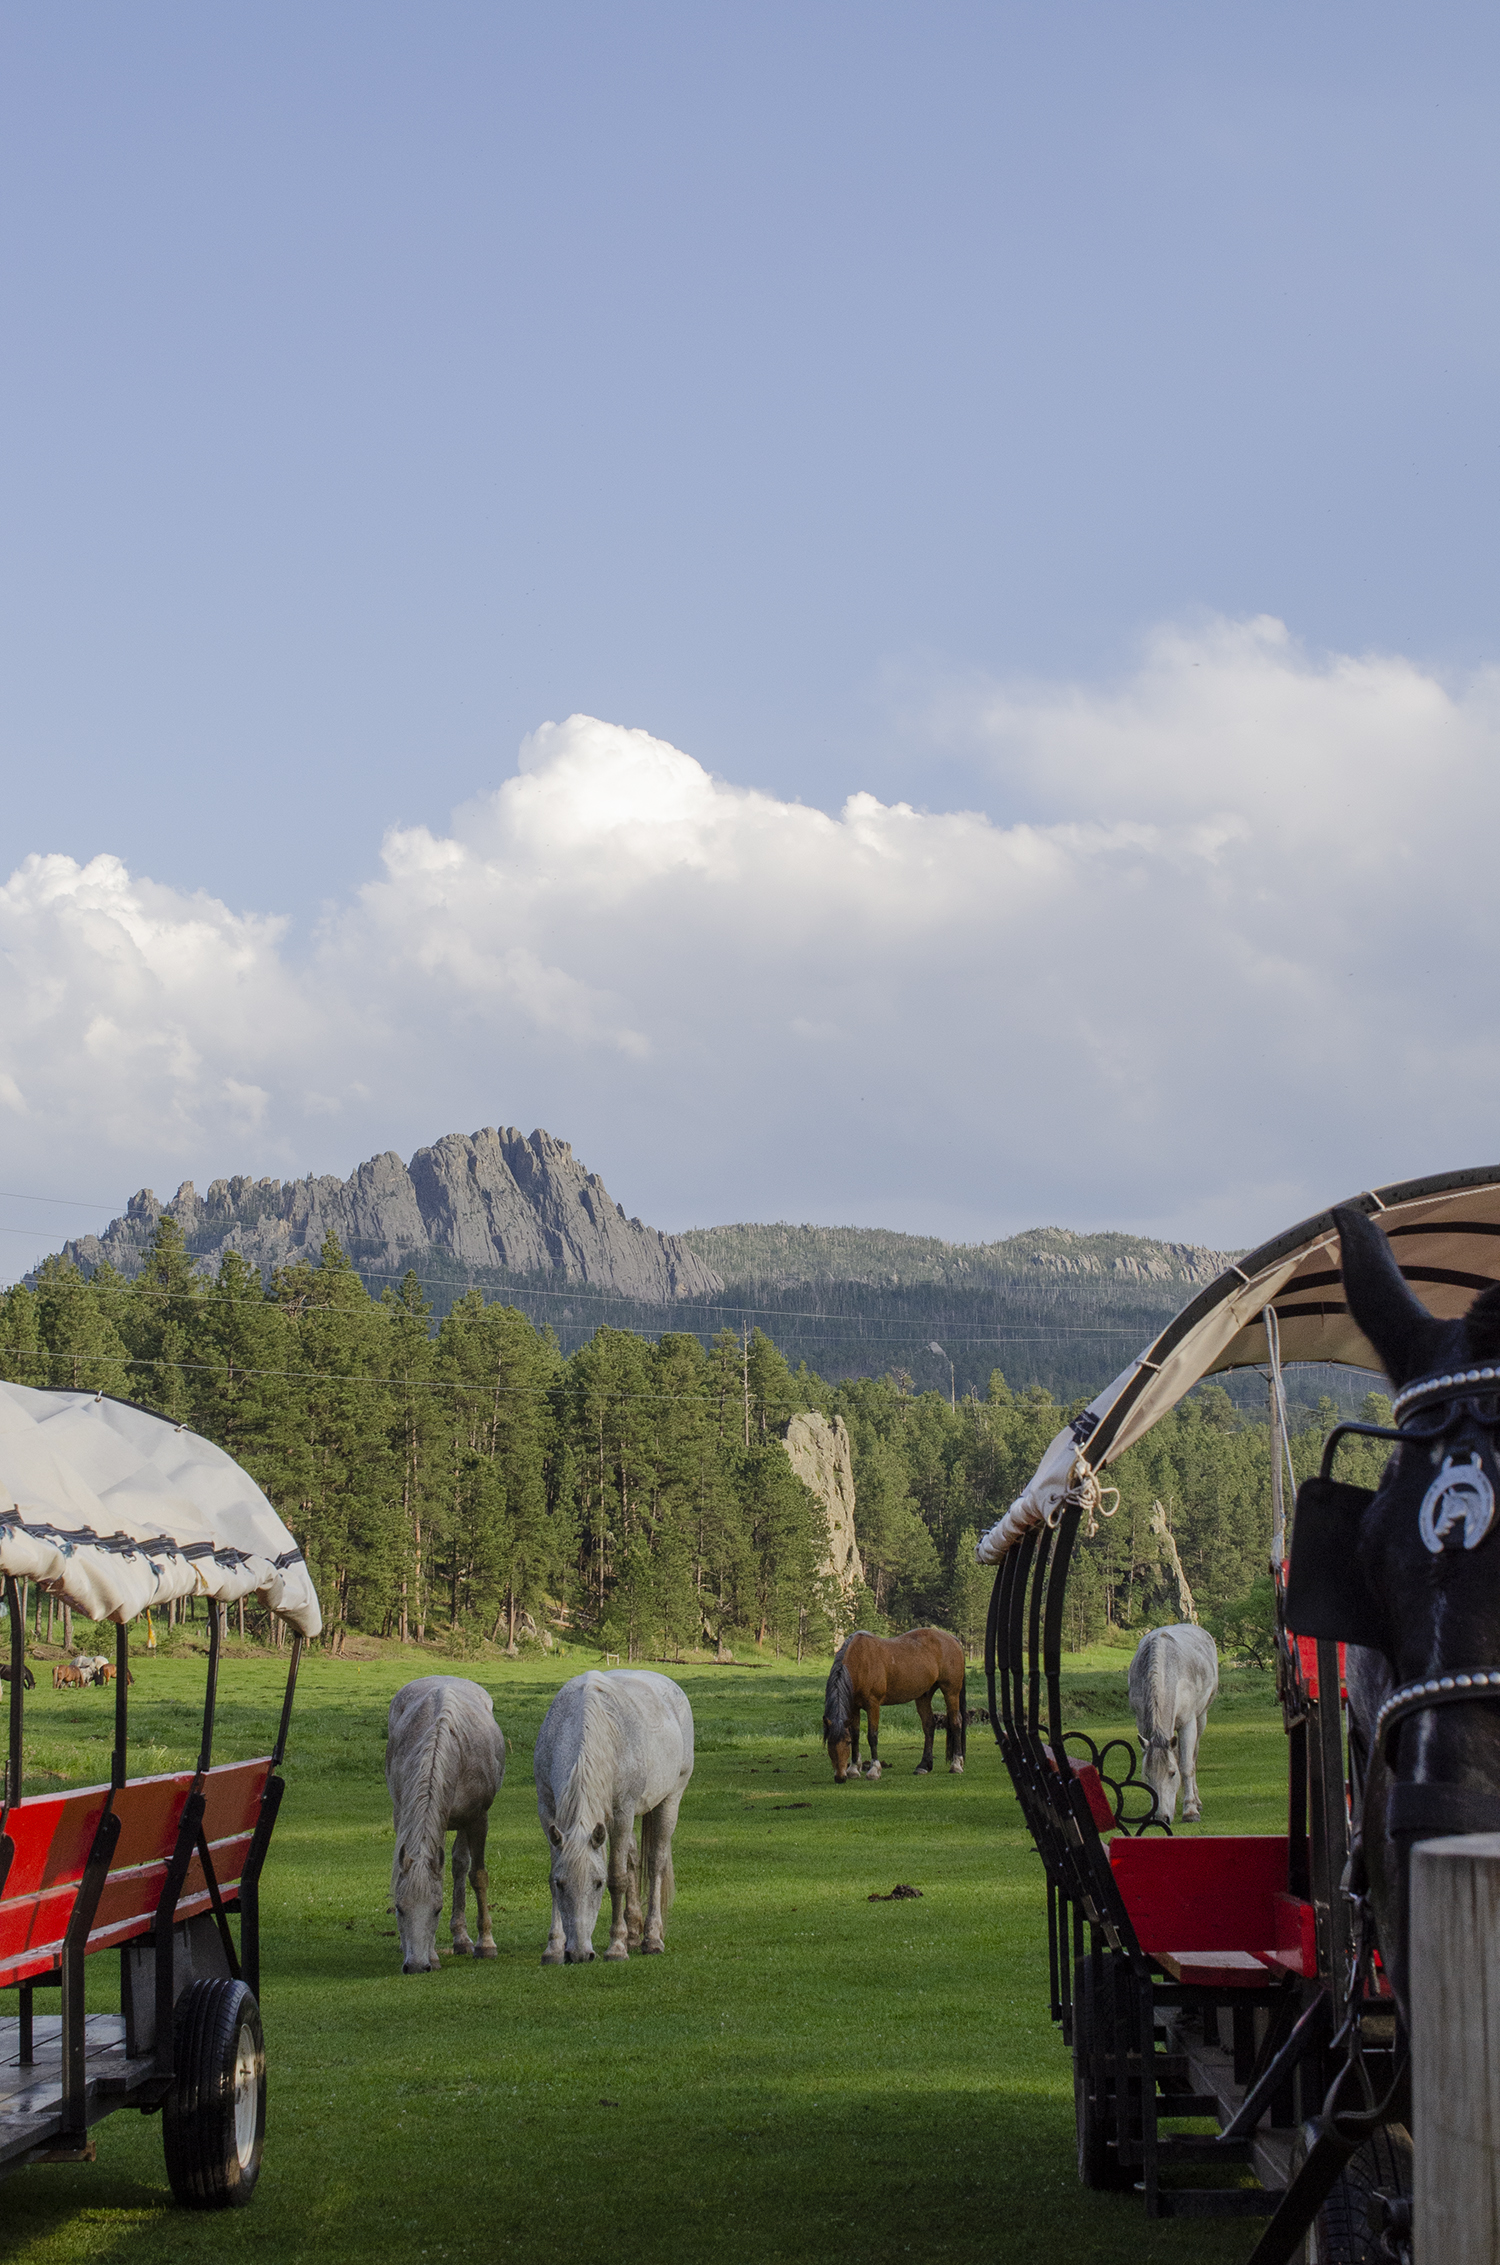 Meadow, horses, and covered wagons